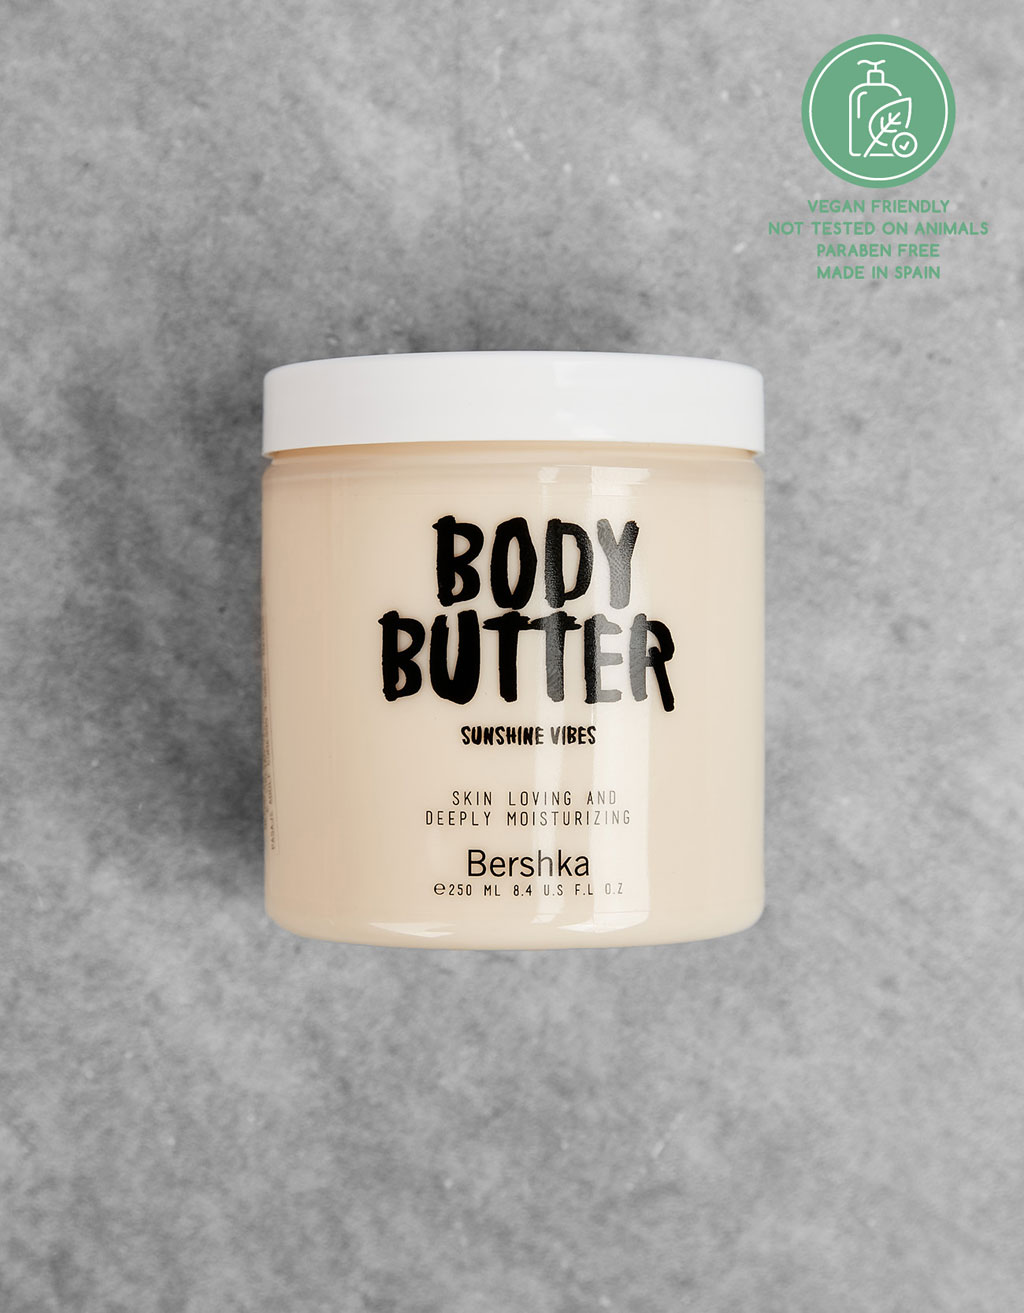 Bershka Body Butter Sunshines Vibes 250ml